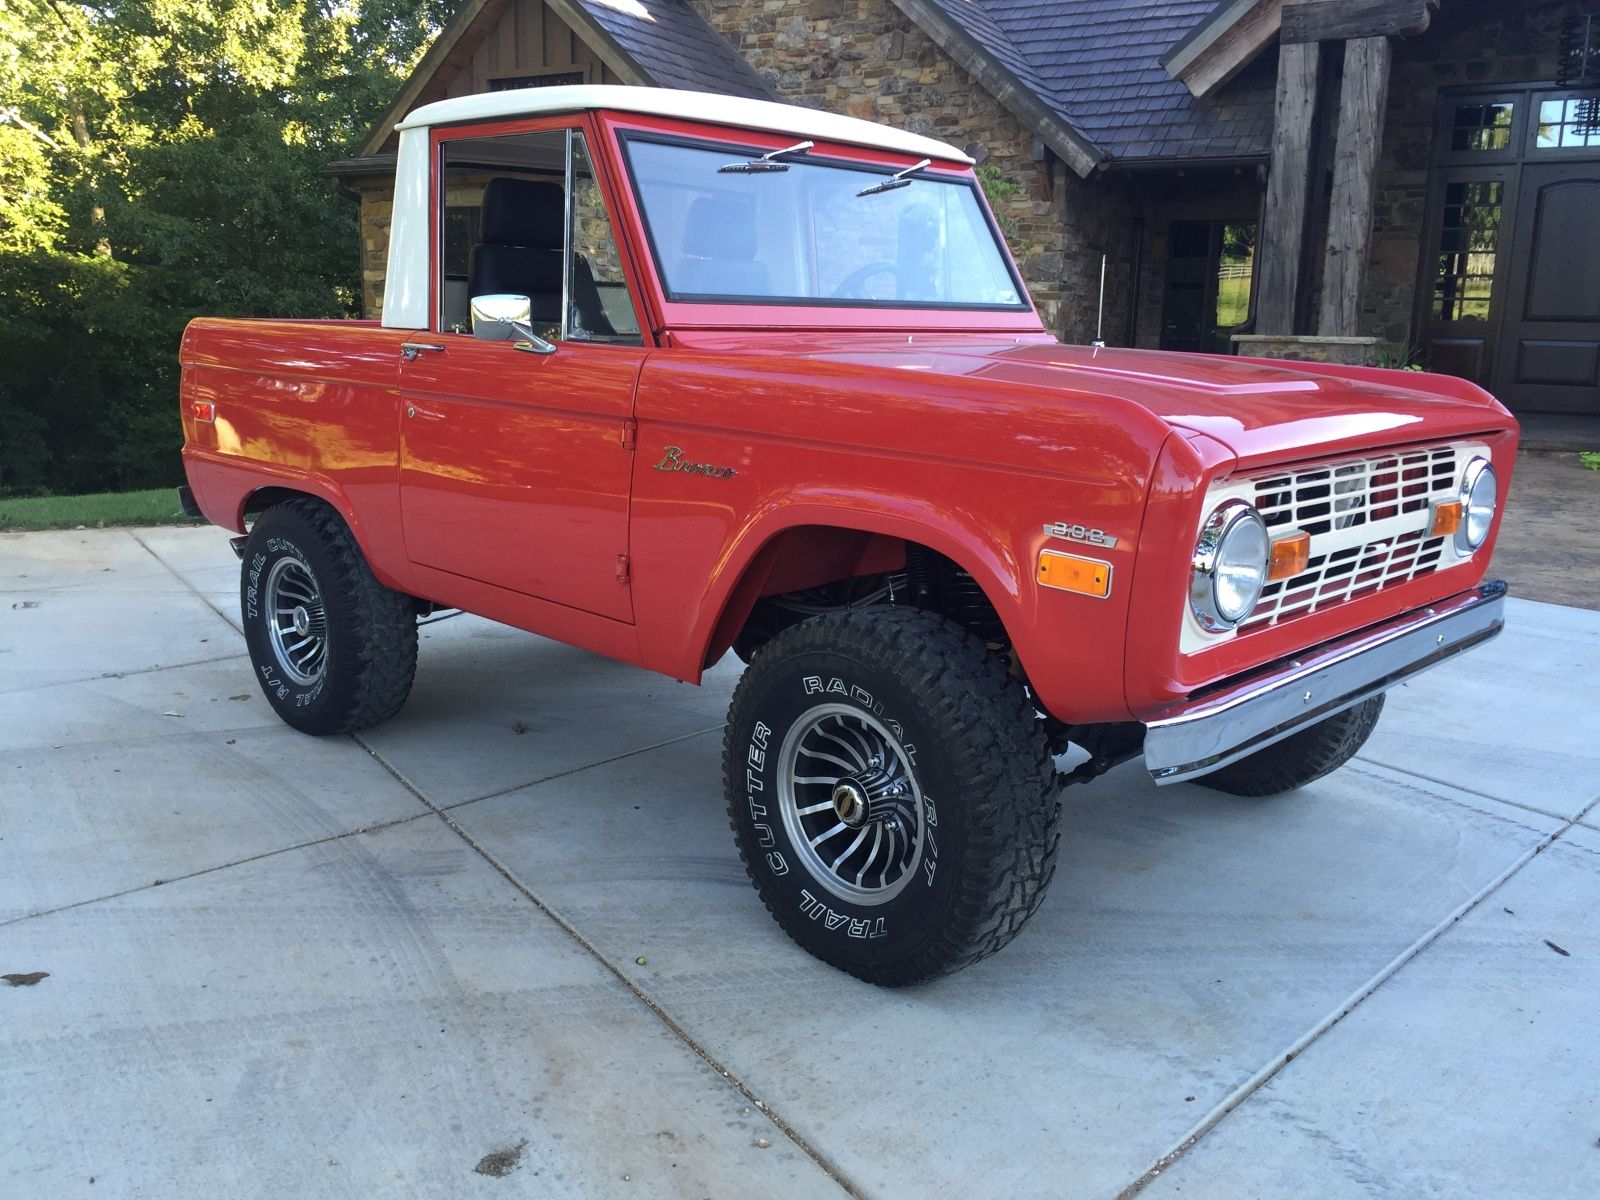 1975 Ford Bronco Rangoon Red With Turbines Vintage Off Road 1980 Frame